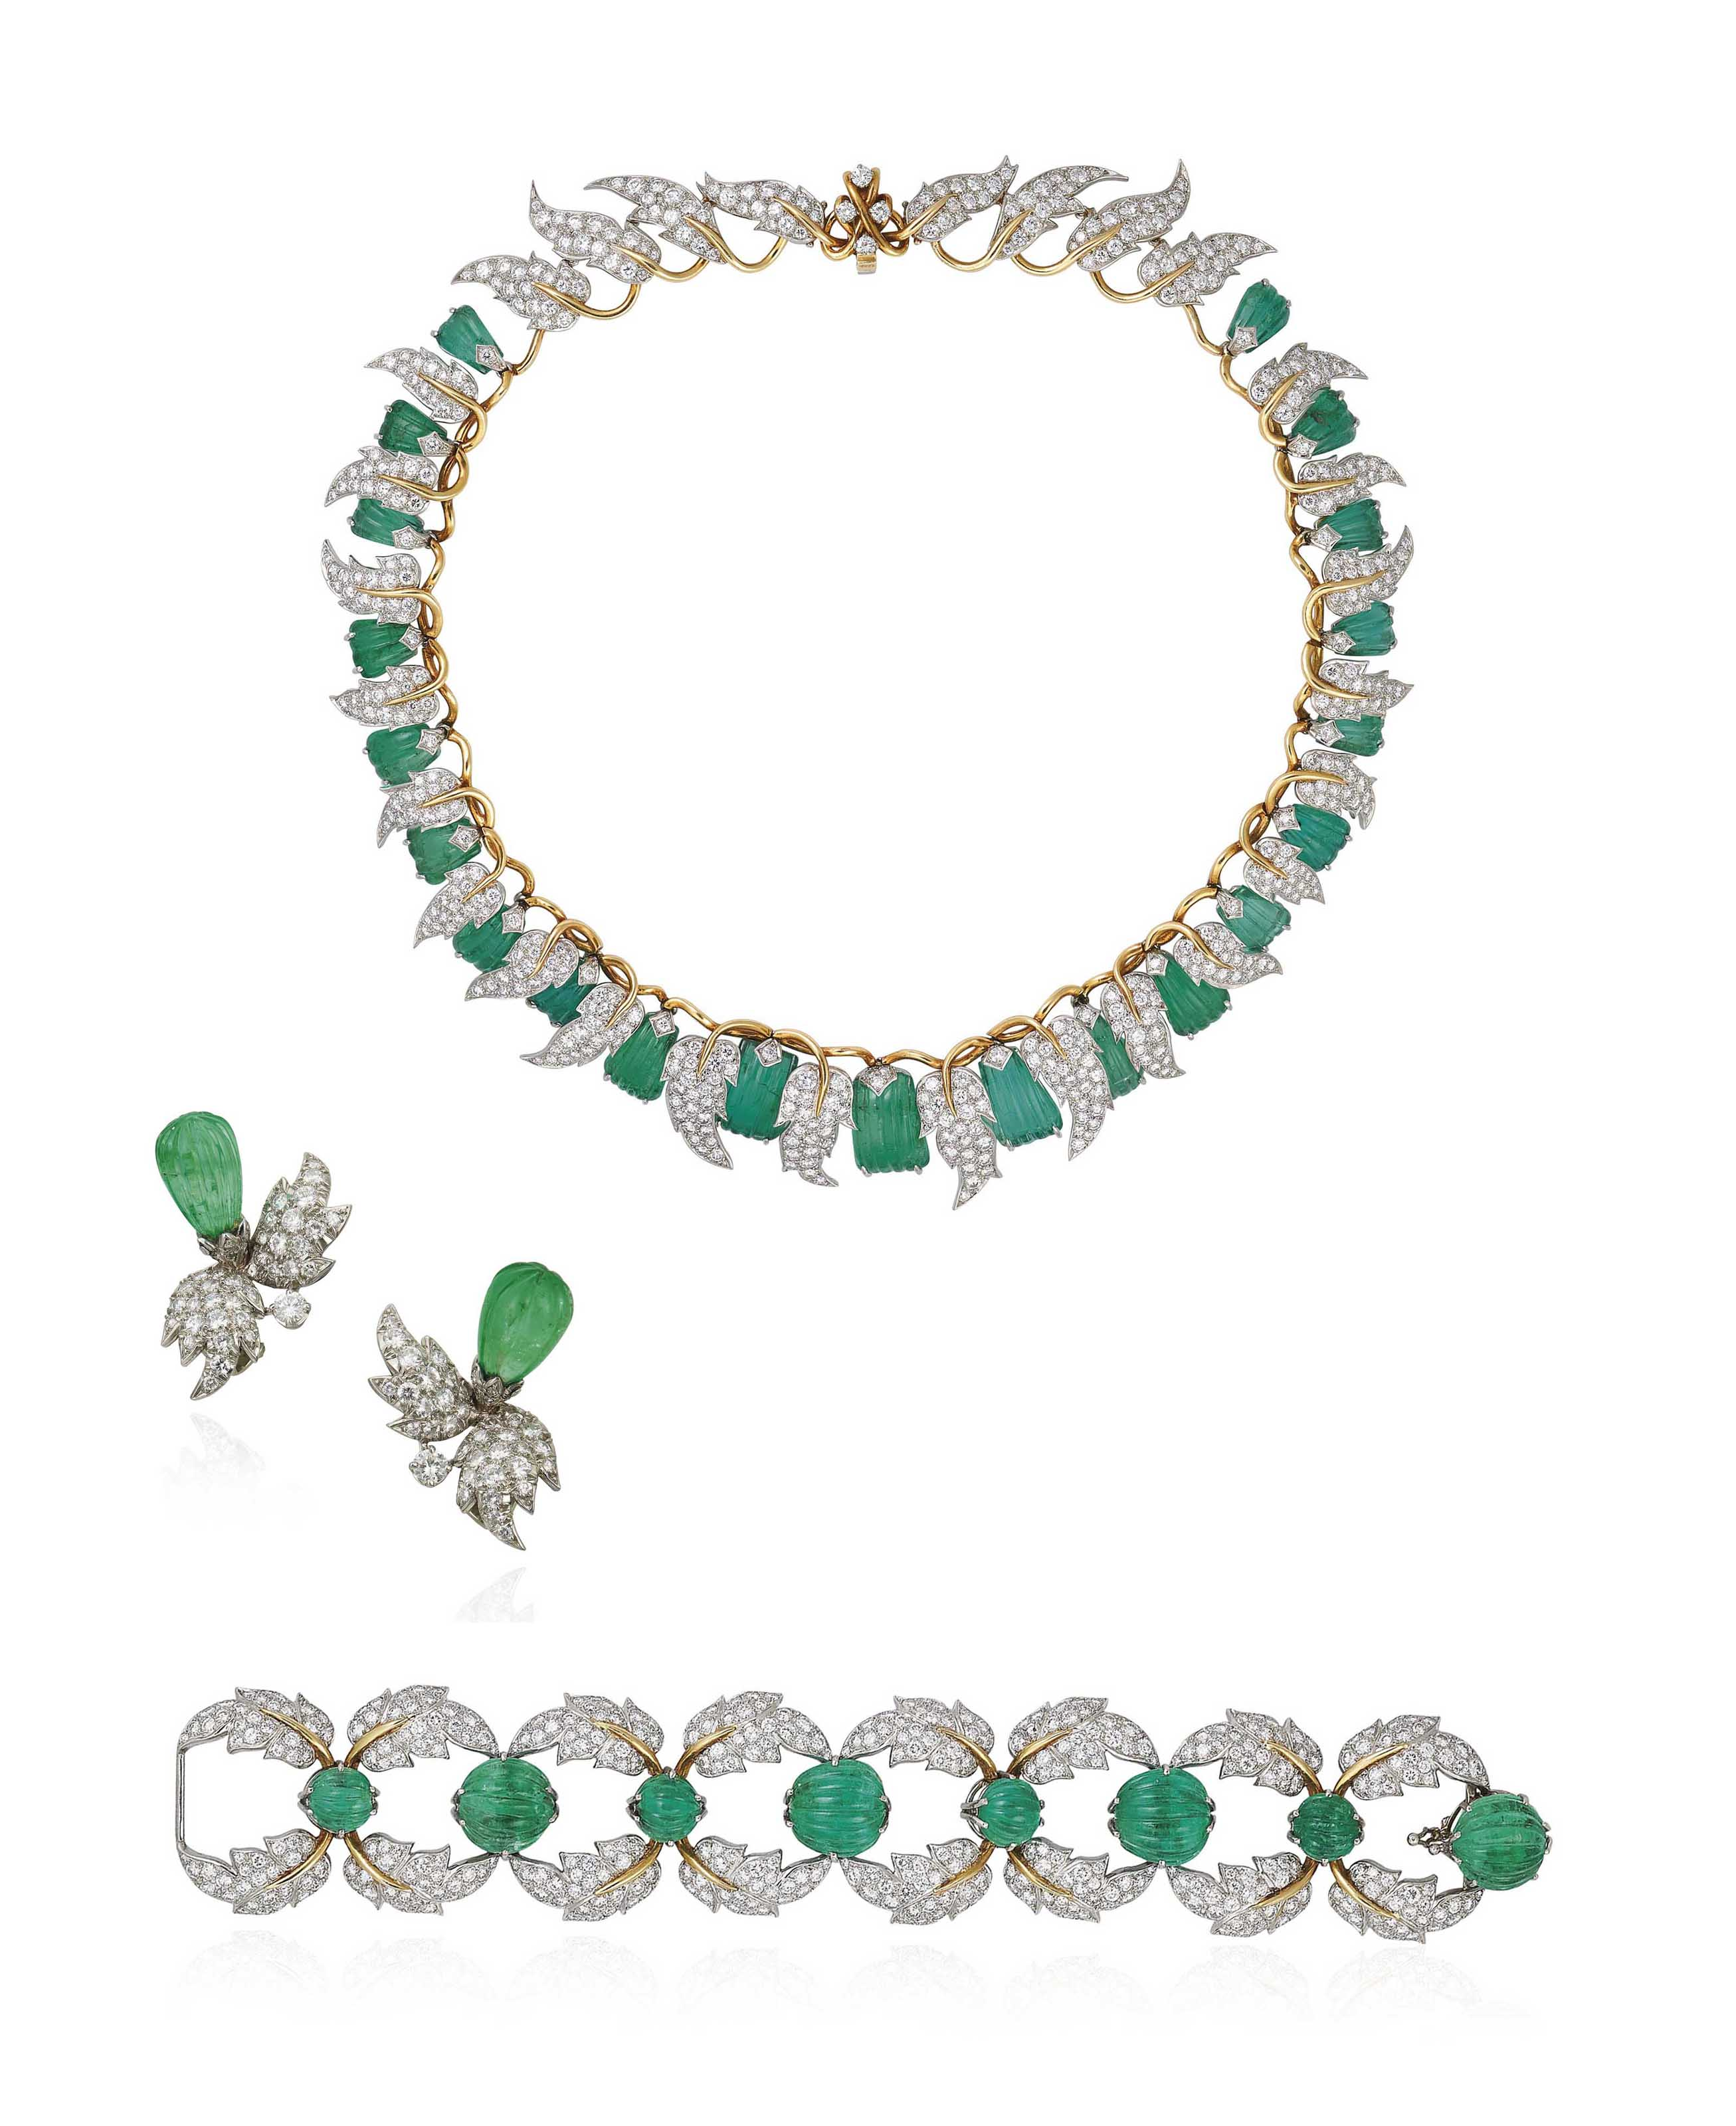 AN EMERALD AND DIAMOND NECKLACE, BRACELET AND EARRING SUITE, BY SCHLUMBERGER FOR TIFFANY & CO.